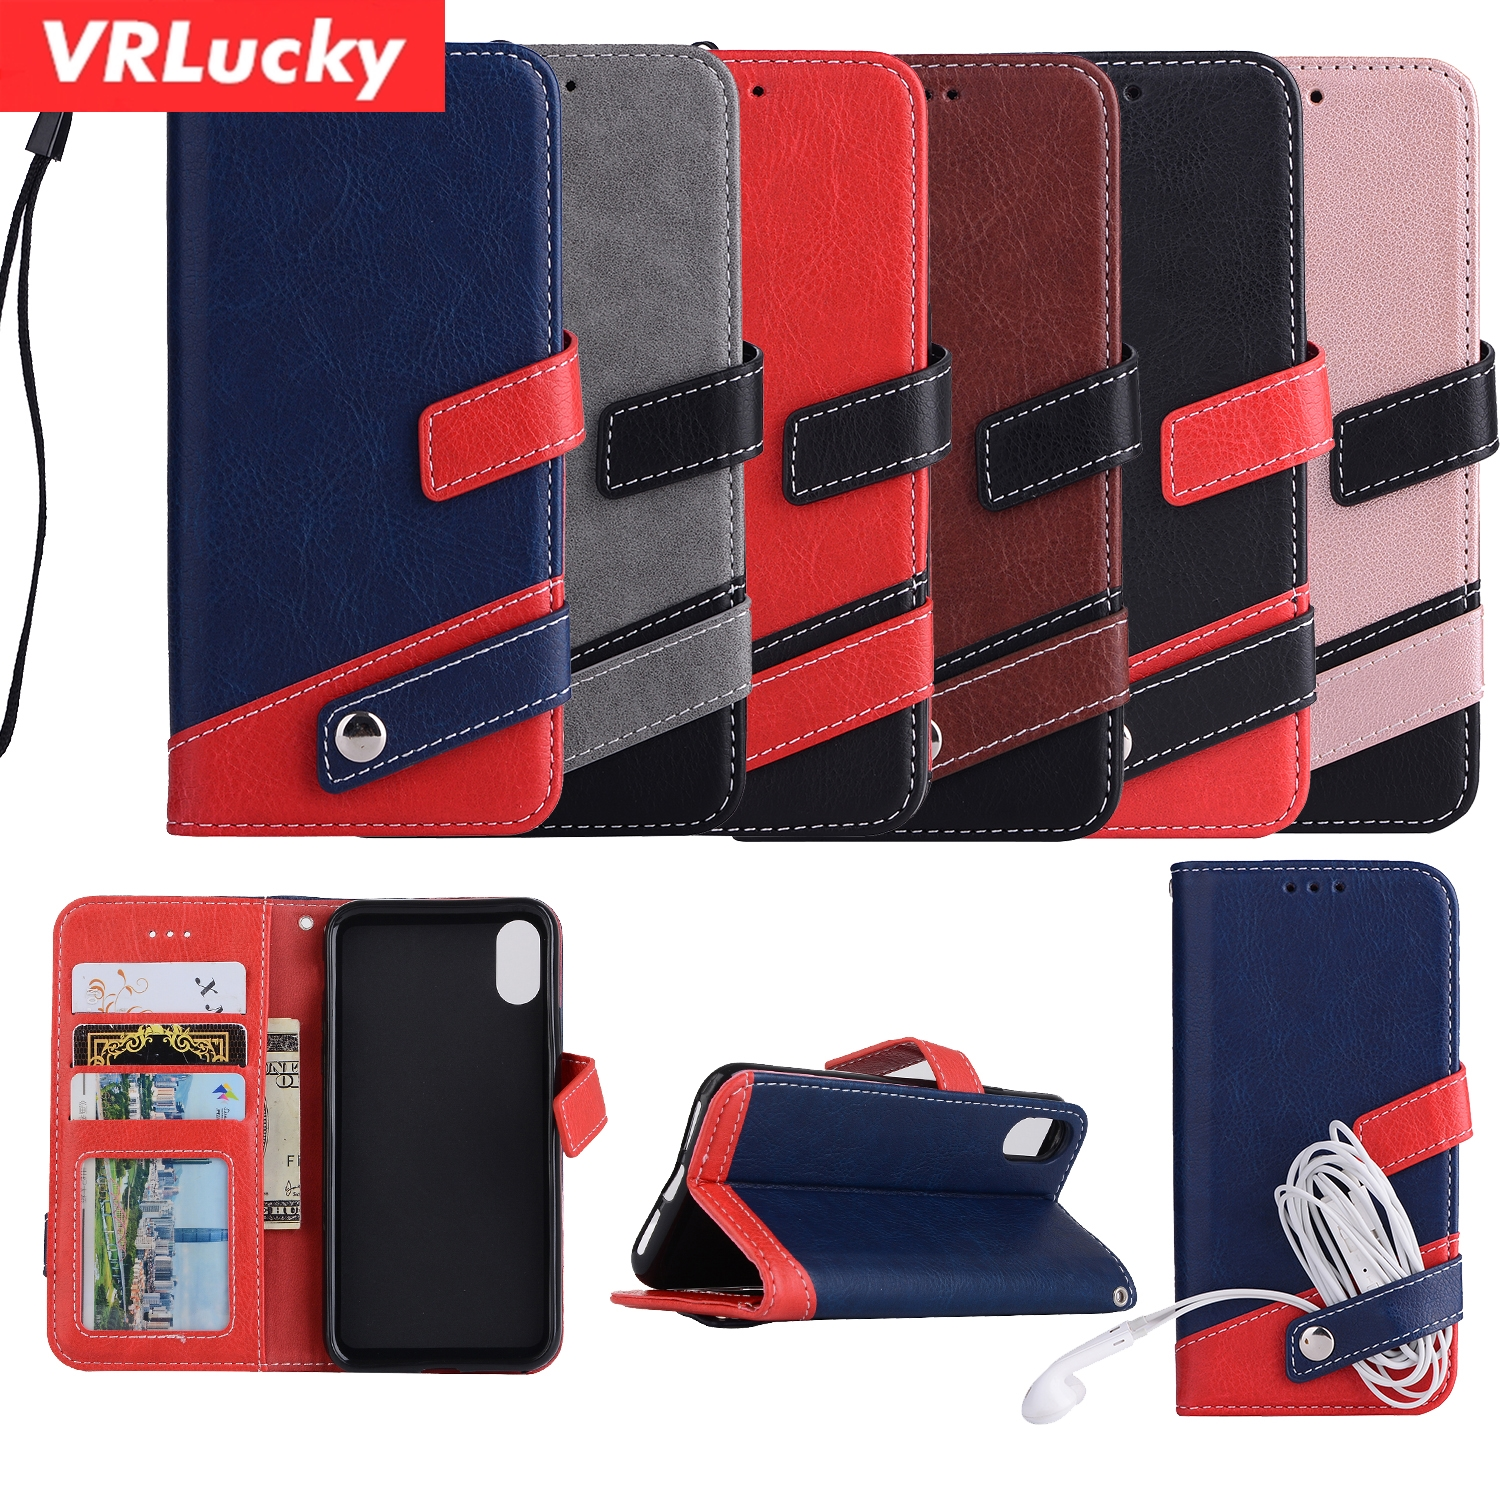 VRLucky Magnetic Buckle Earphone Storage Leather Wallet Flip Phone Case With Card Slots For iPhone X 8 7 Plus 6 6s 5 5s SE